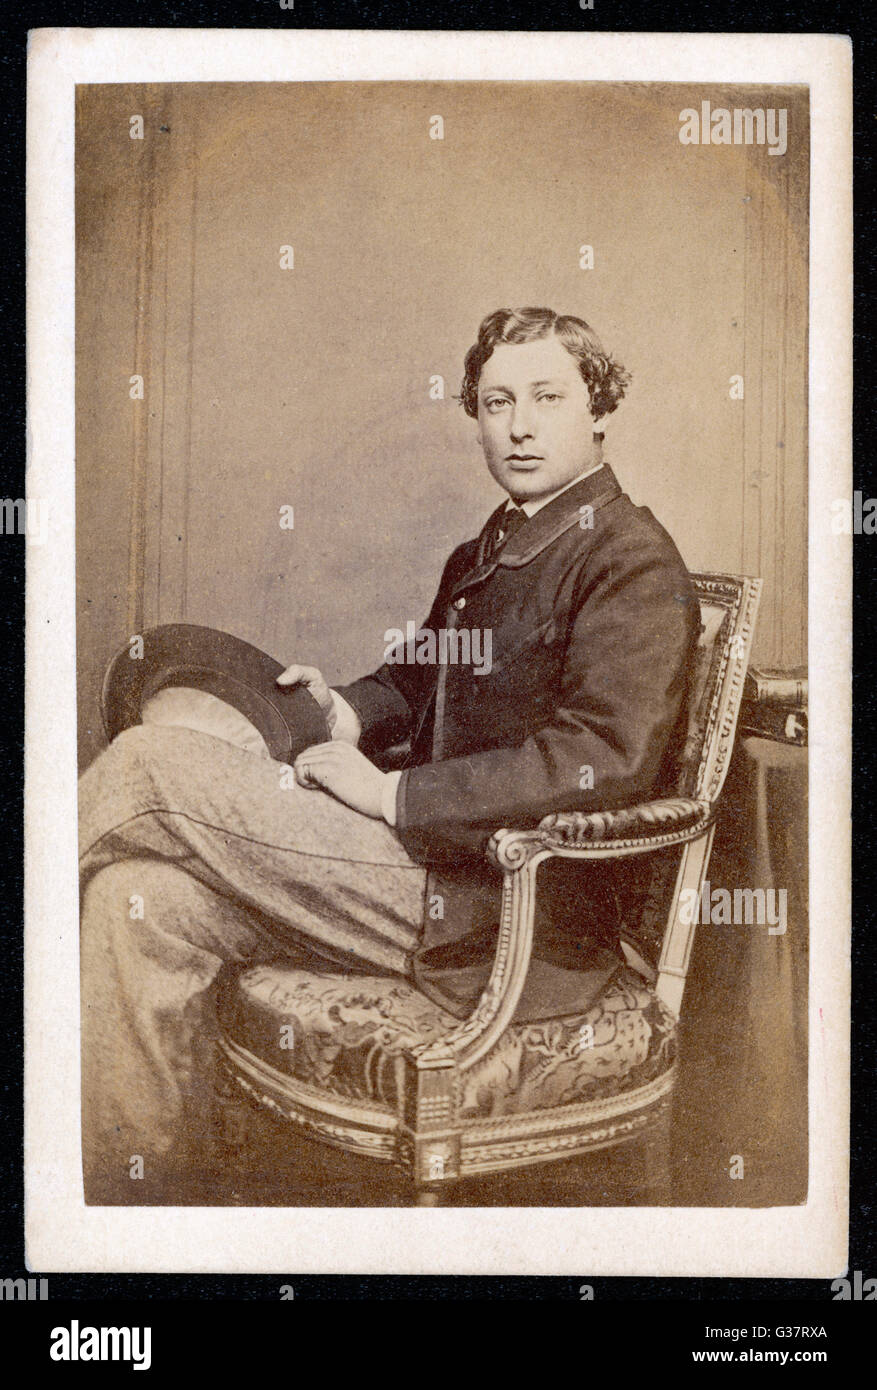 EDWARD VII, BRITISH ROYALTY as young PRINCE OF WALES  seated in relaxed pose        Date: 1841 - 1910 - Stock Image